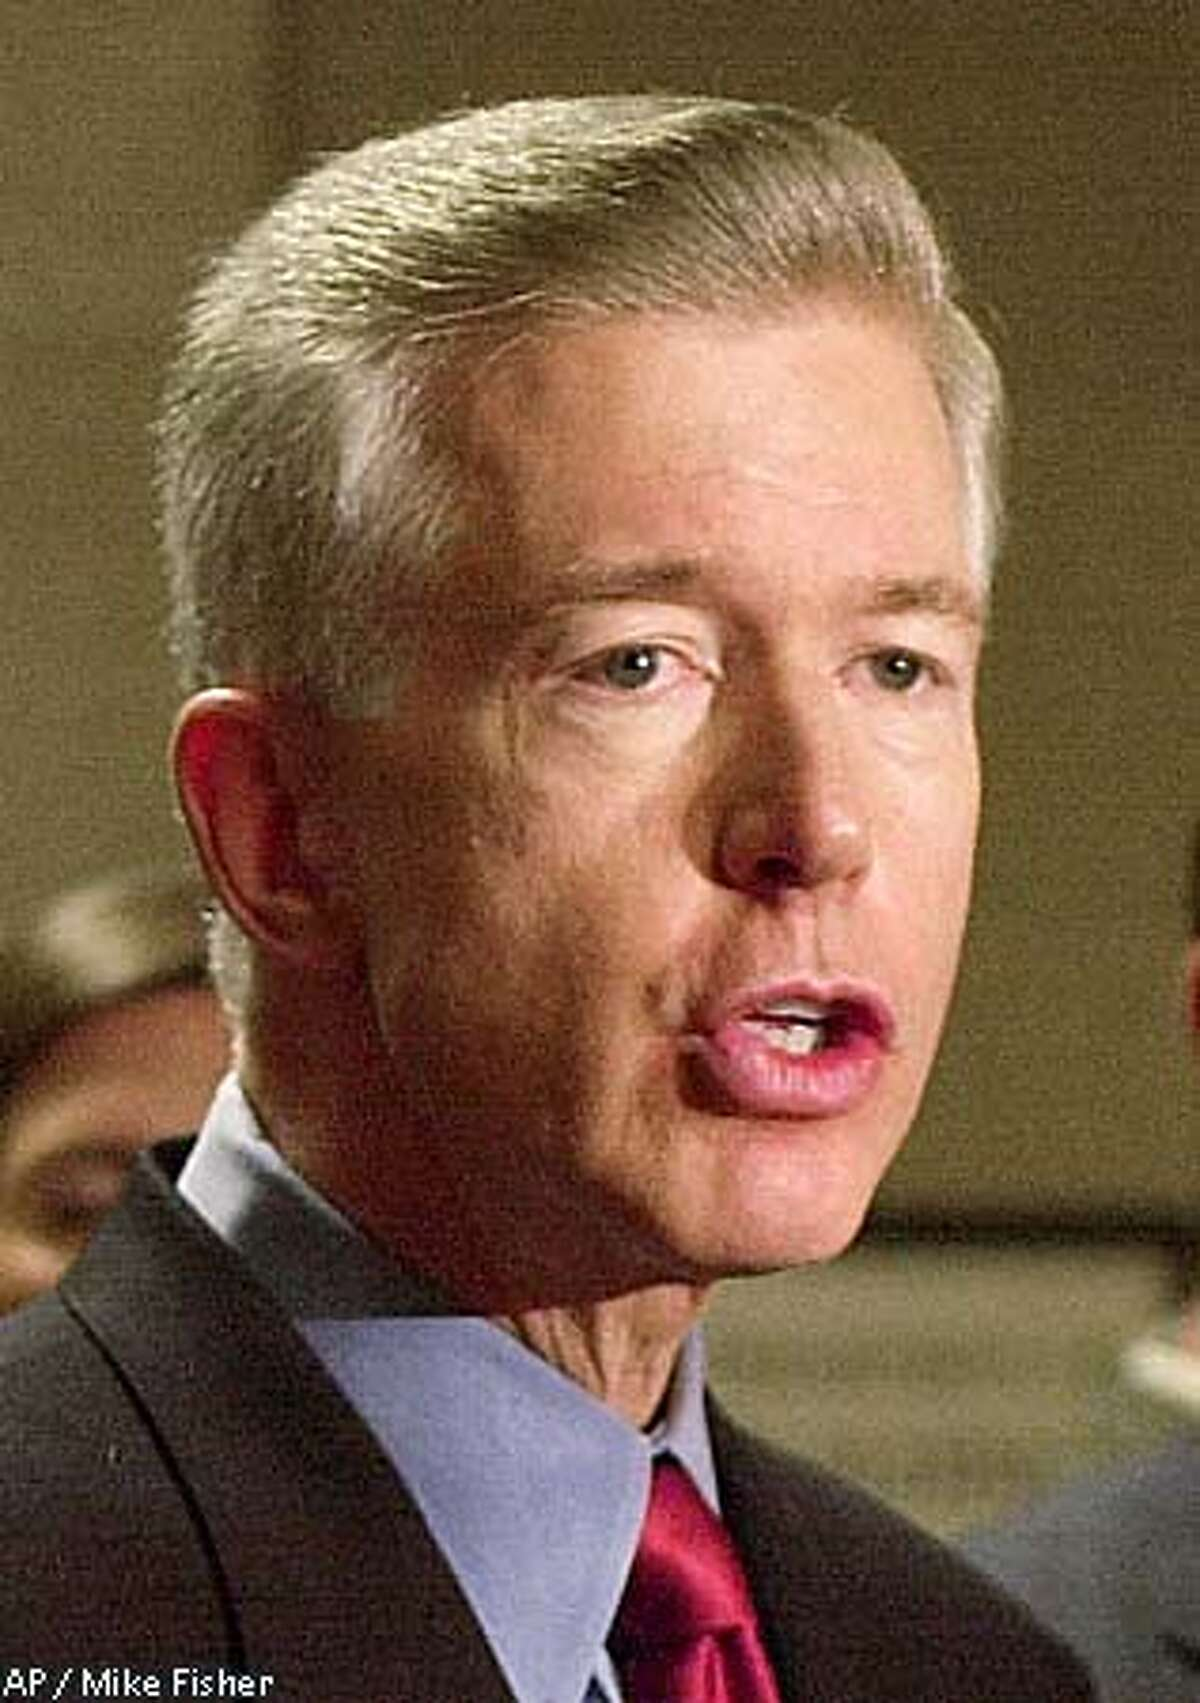 ADVANCE FOR MONDAY MAY 28-California Gov. Gray Davis talks with reporters after meeting with Chicago Mayor Richard M. Daley in Chicago, Monday May 21, 2001. Davis was briefed on how Chicago handled electrical blackouts when faced with power shortages. For Californians, Memorial Day not only is the traditional start of summer, but also marks the start of the blackout season. (AP Photo/Mike Fisher) ALSO RAN: 07/11/2001